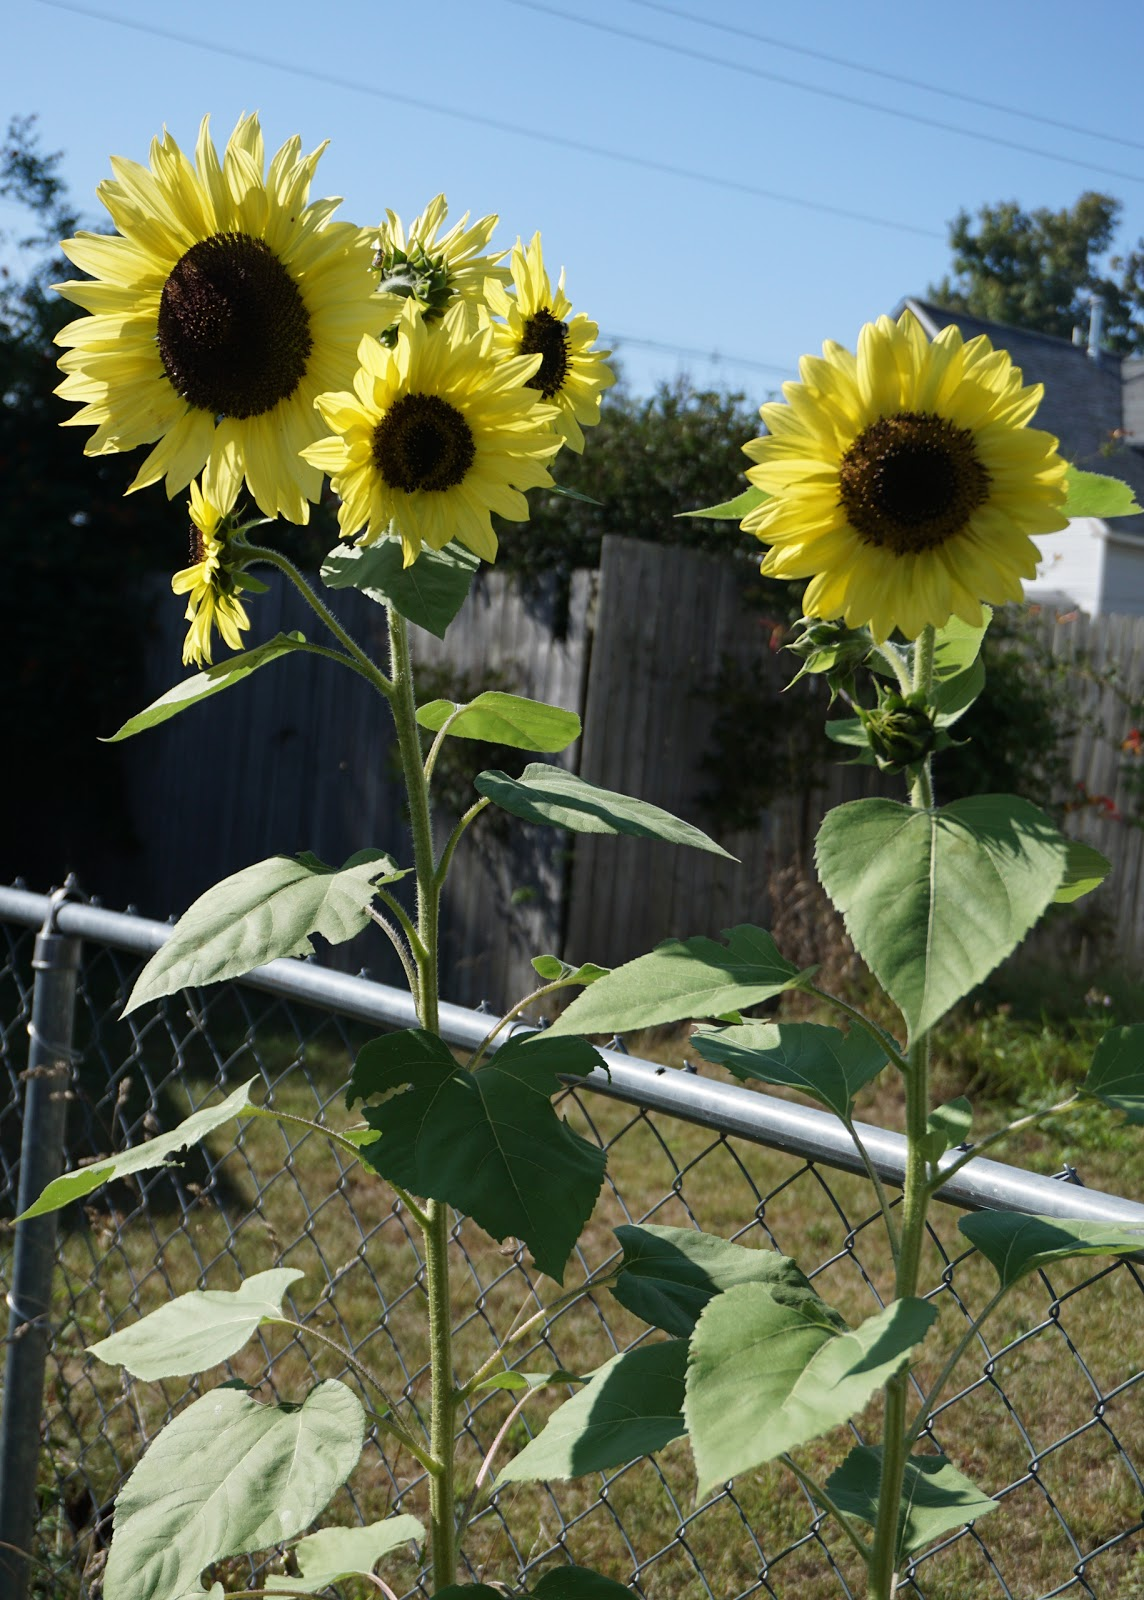 Our 2017 Sunflowers